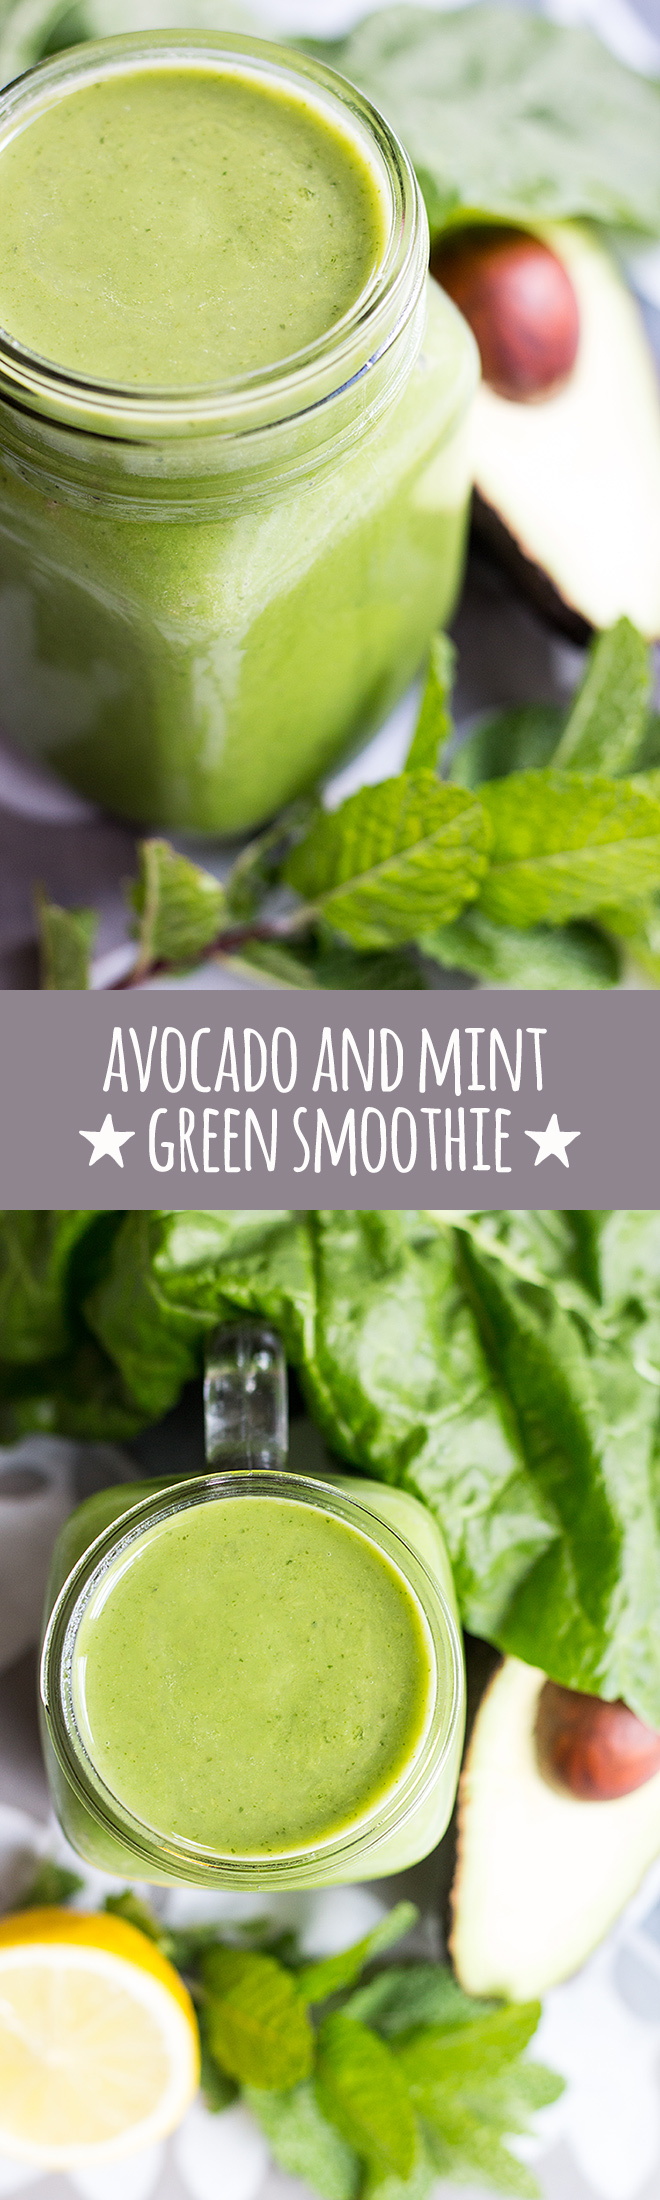 Immune boosting avocado and mint green smoothie.